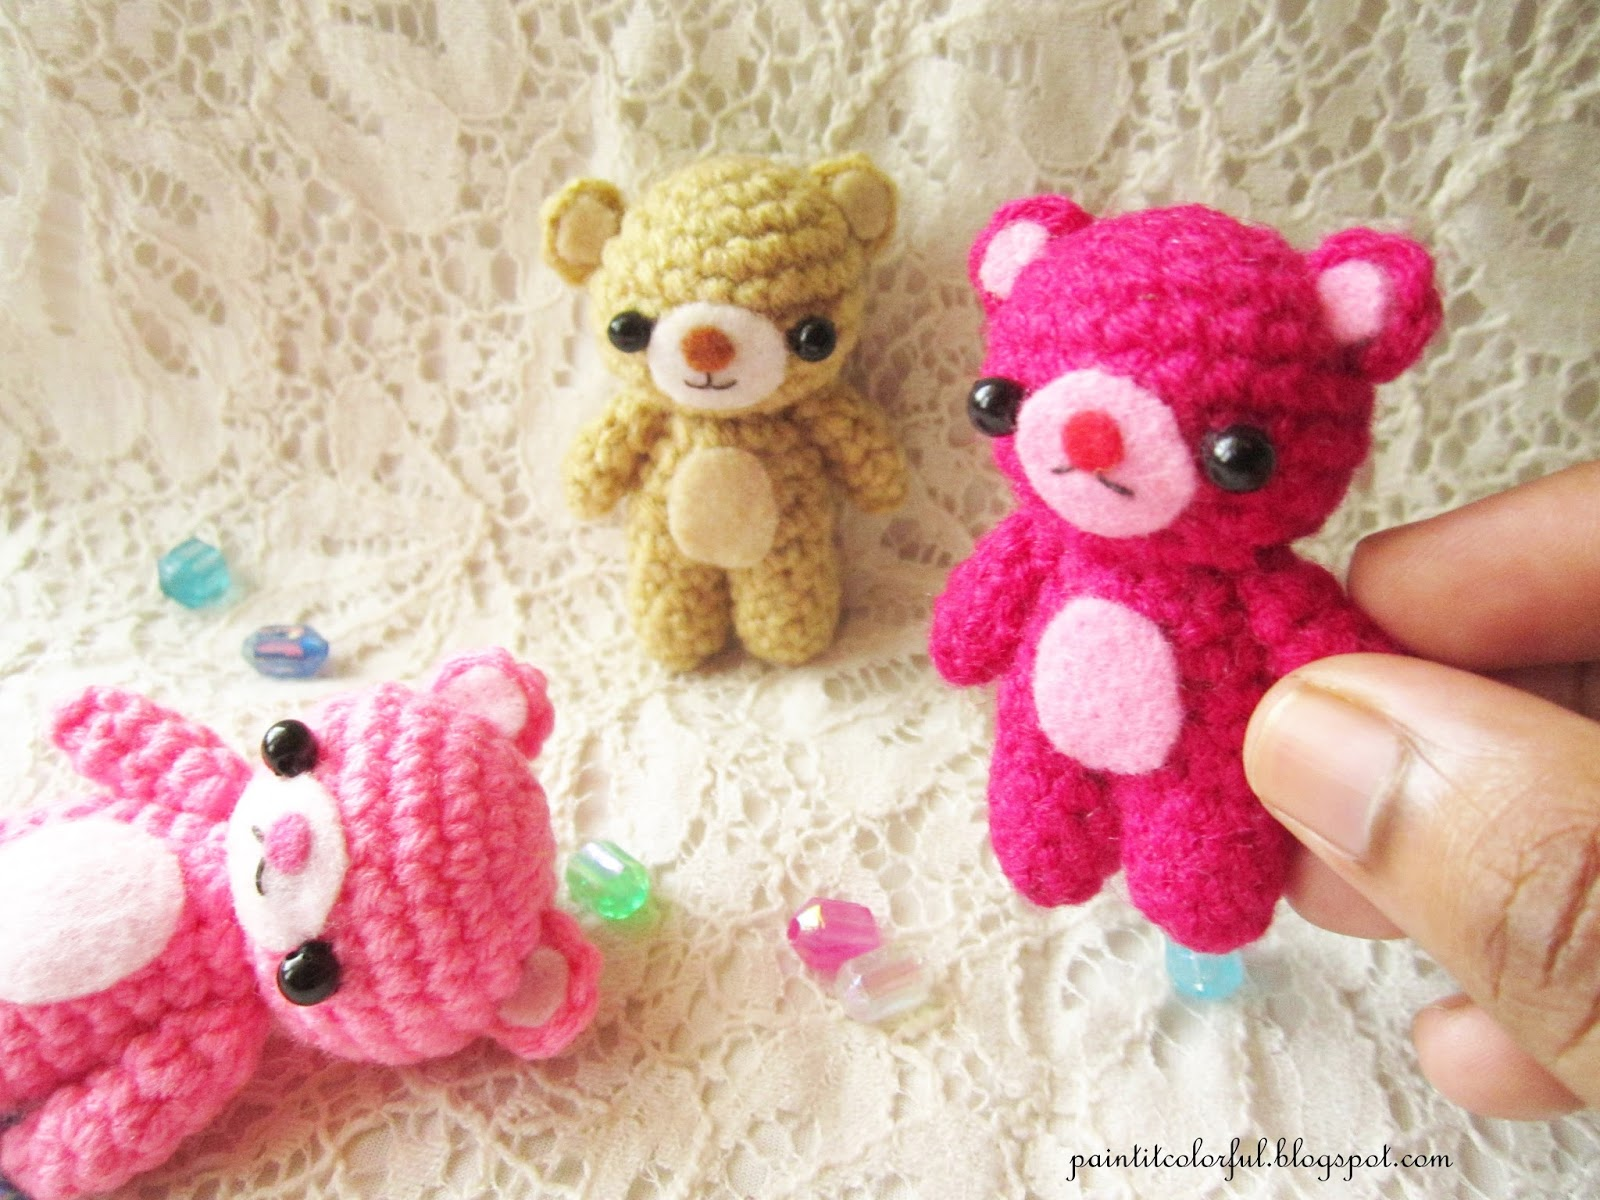 Eyes For Amigurumi : Amigurumi teddy bear pattern a little love everyday!